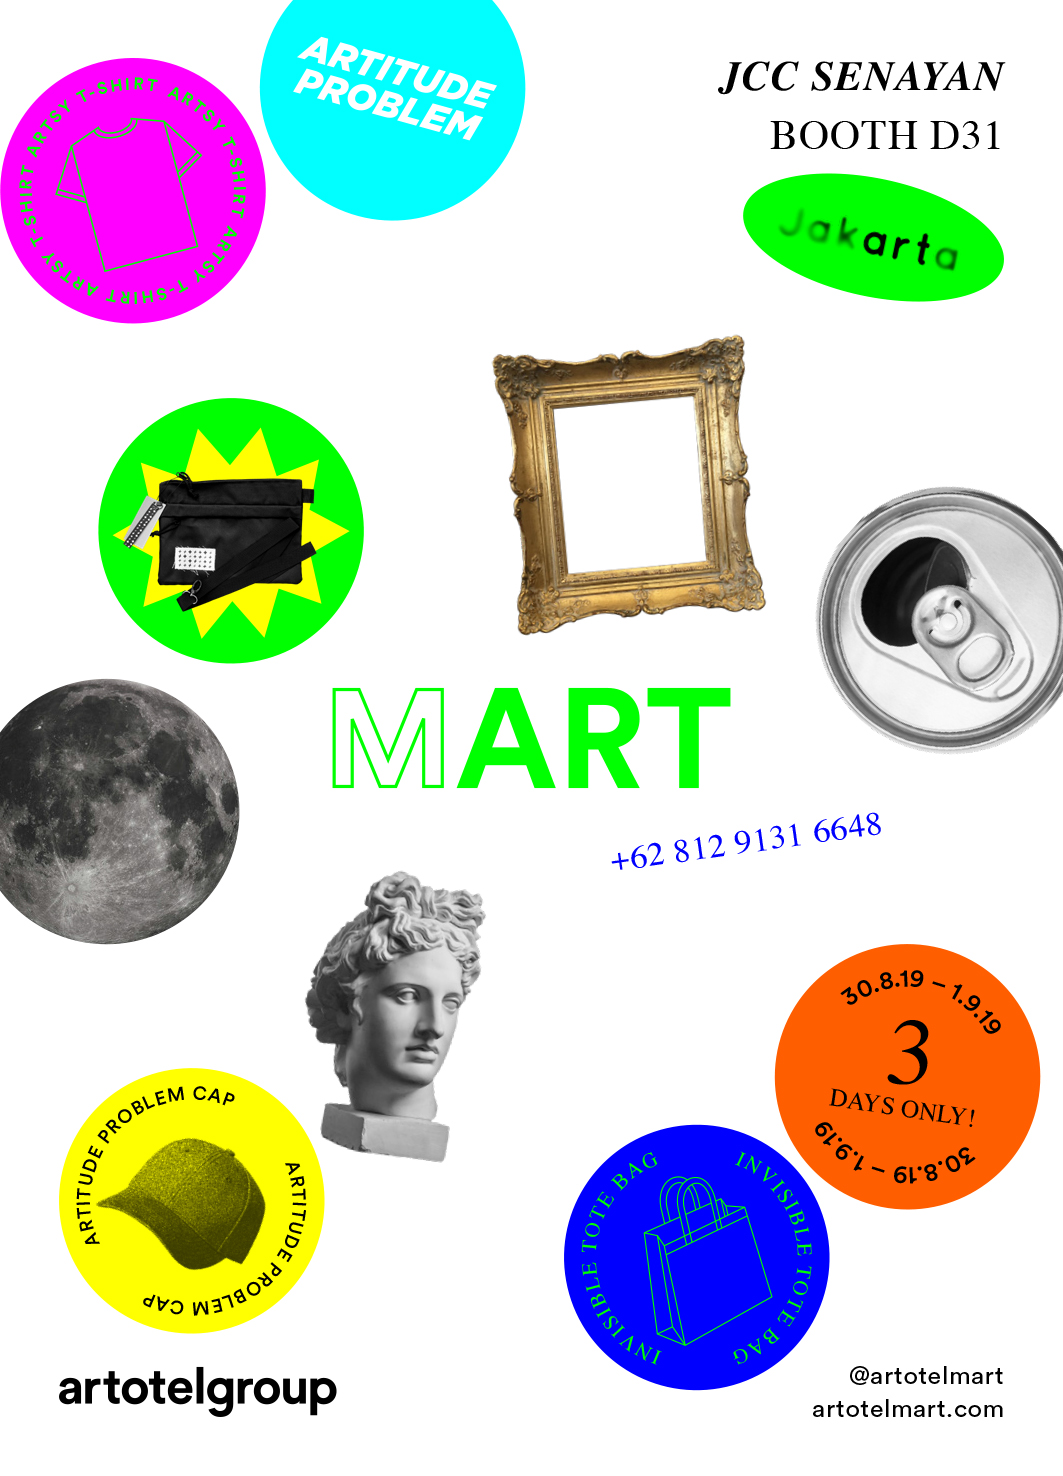 https://highend-traveller.com/artotel-mart-the-new-merchandise-business-unit-concept-of-artotel-group/